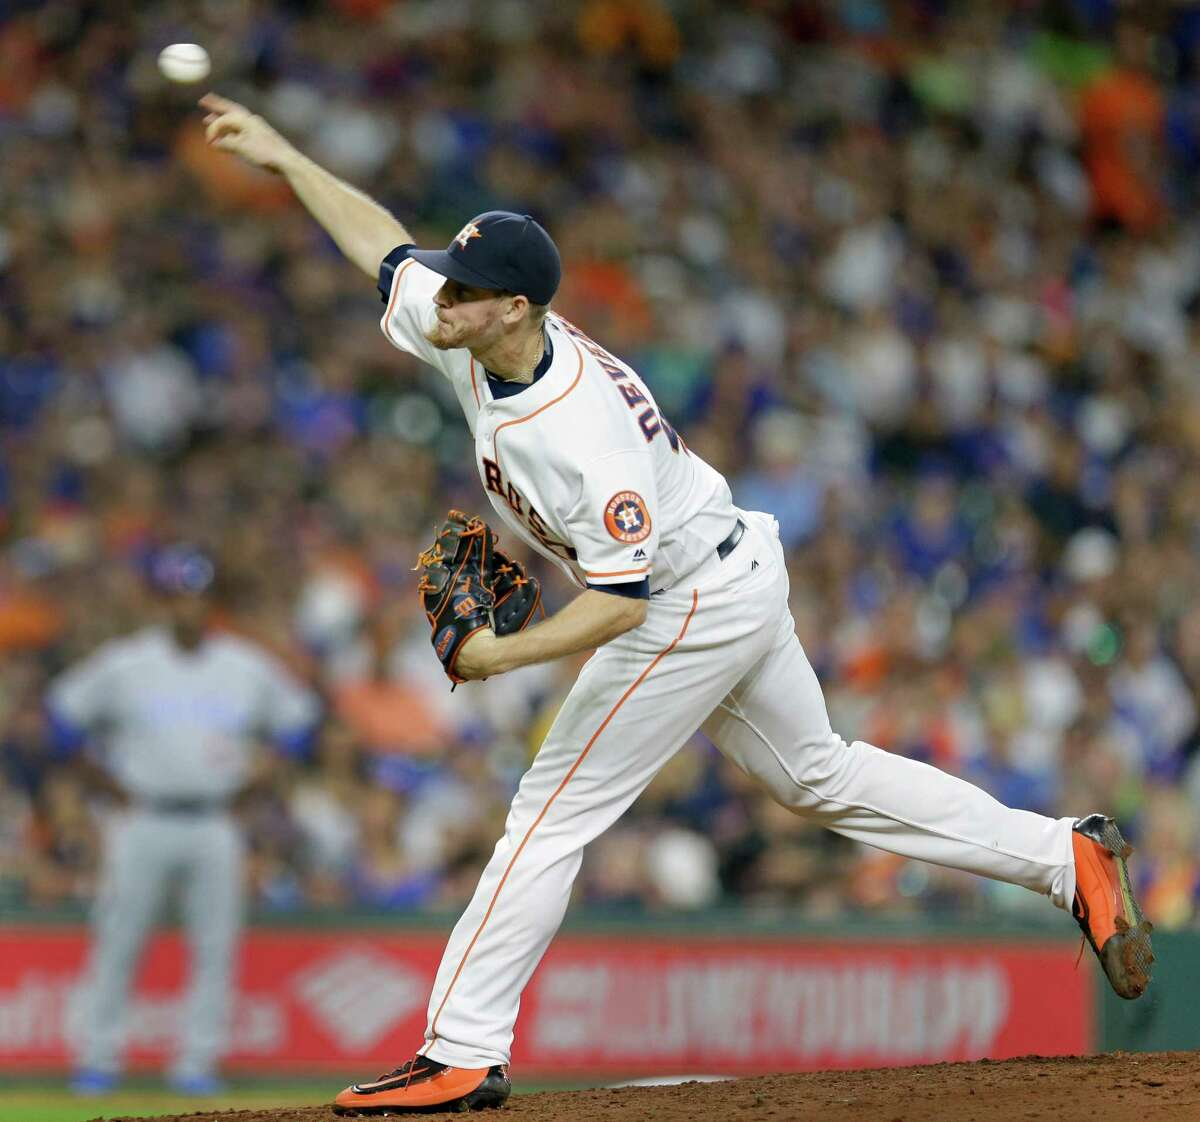 Houston Astros Chris Devenski pitches against the Chicago Cubs during the sixth inning at Minute Maid Park Saturday, Sept. 10, 2016, in Houston.